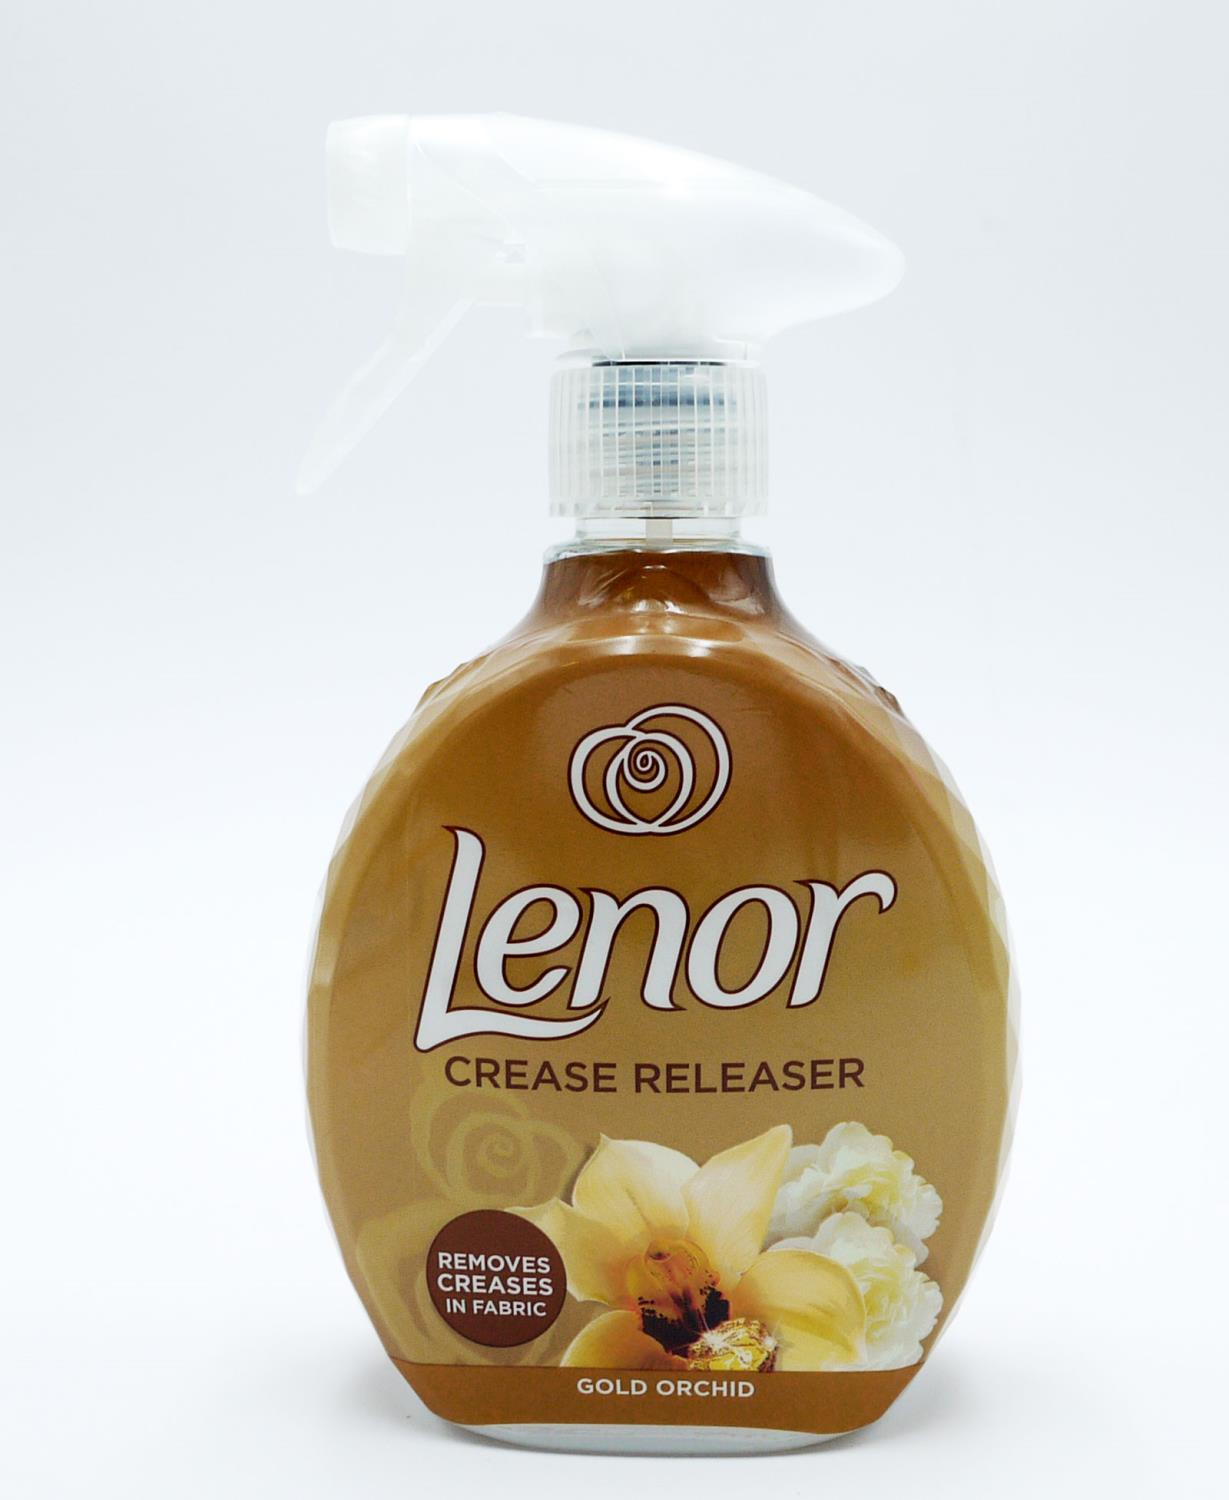 Lenor Gold Orchid Crease Releaser 500ml